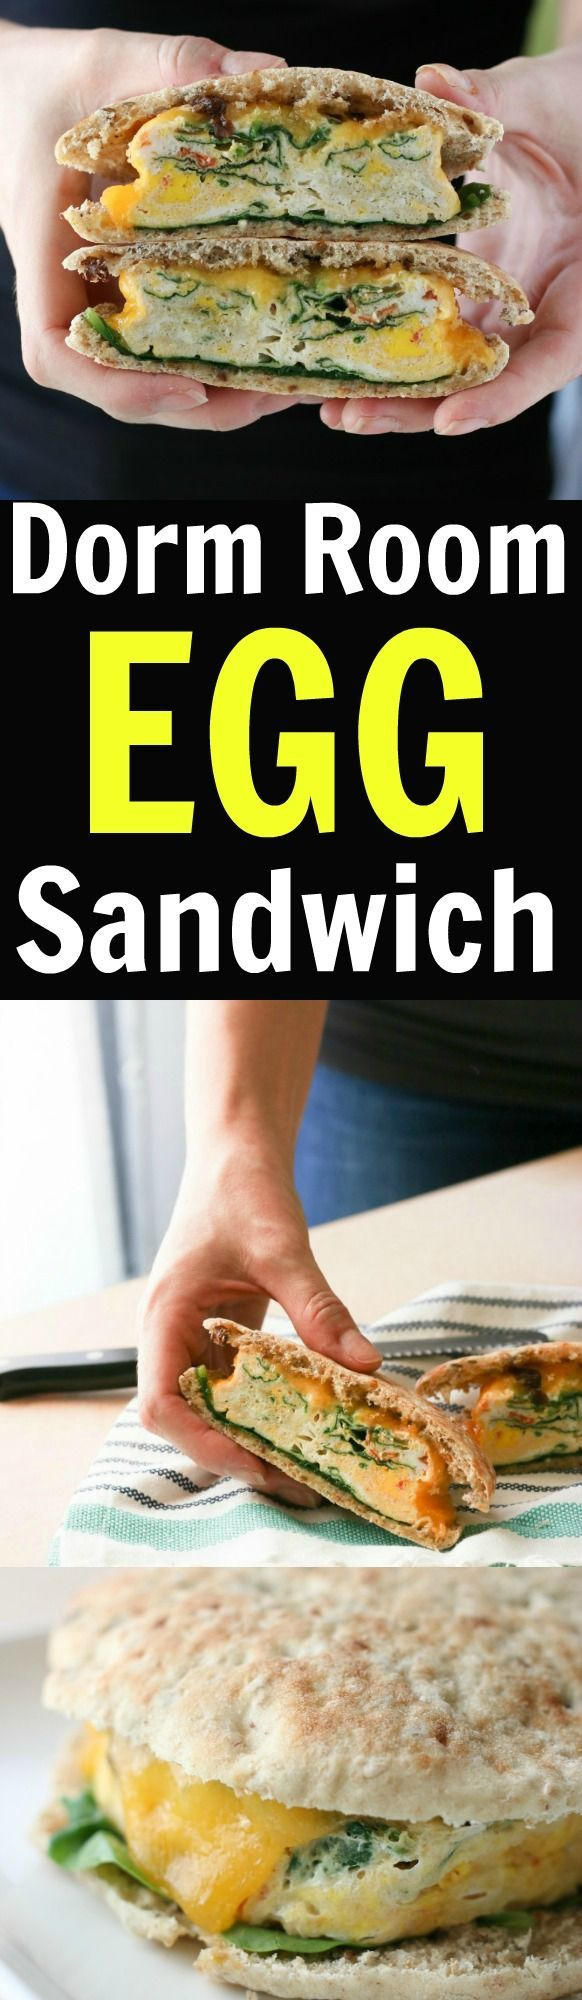 Easy microwave dorm room recipe for a healthy egg sandwich.